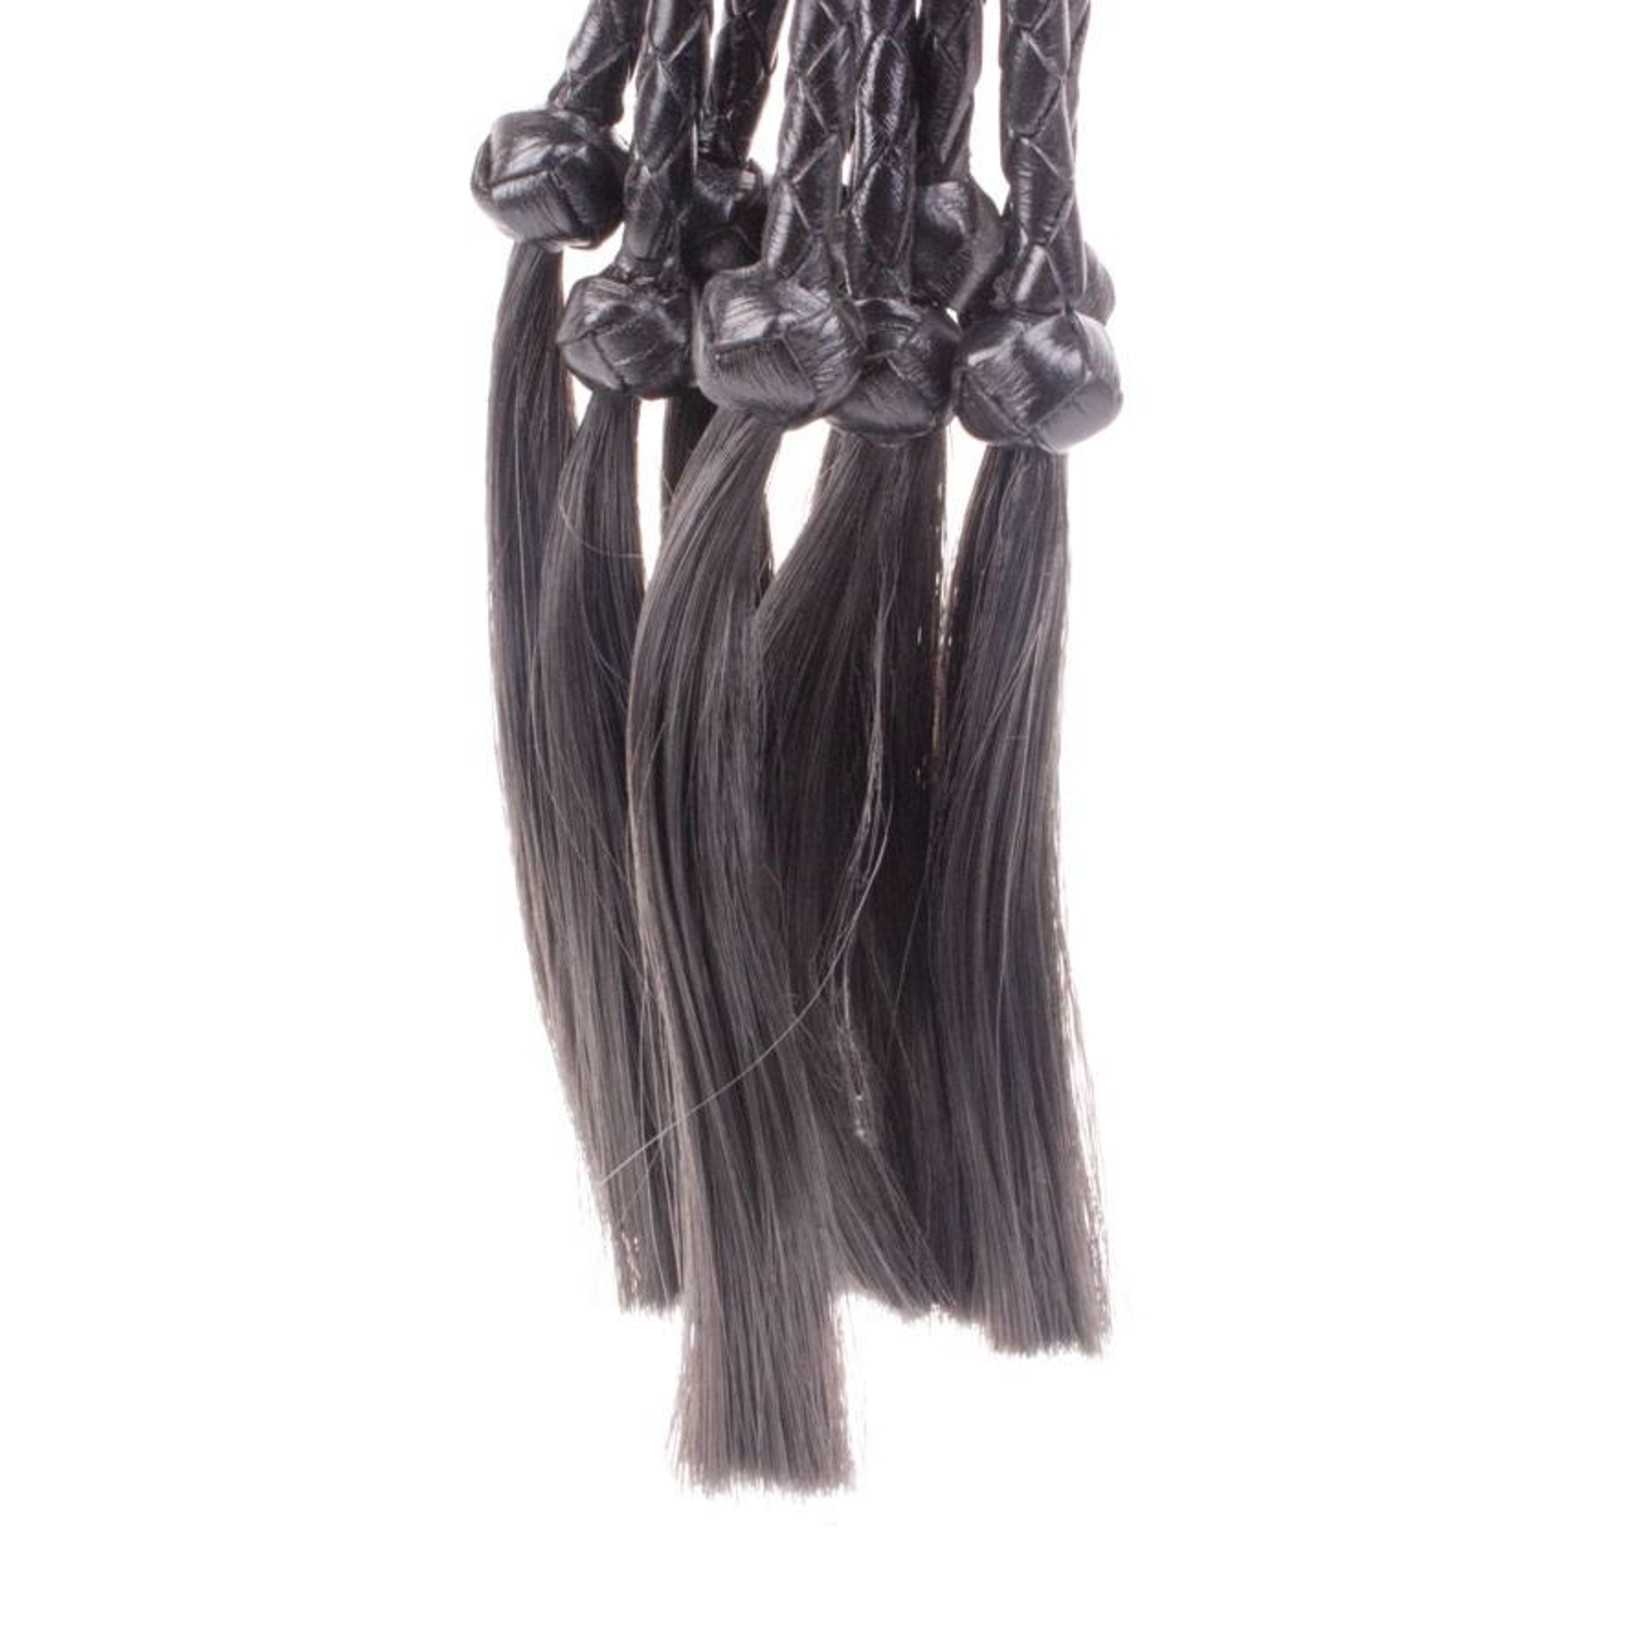 KIOTOS Leather Braided with Hairs - Black Leather